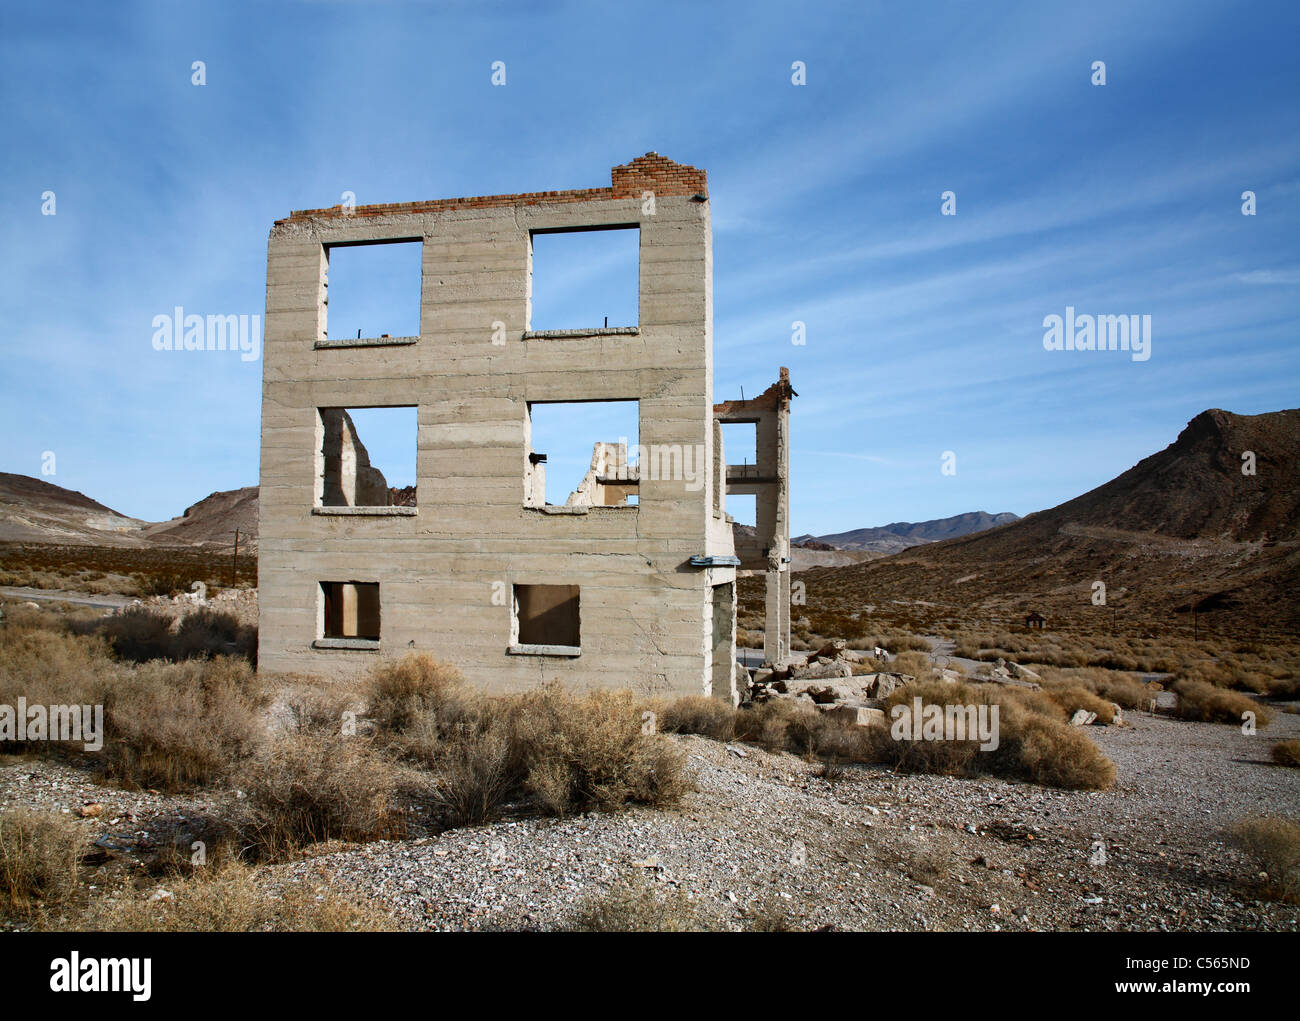 Standing In Mute Testimonial To A Bygone Era, Rhyolite Nevada, An Abandoned Town Near Death Valley, USA - Stock Image